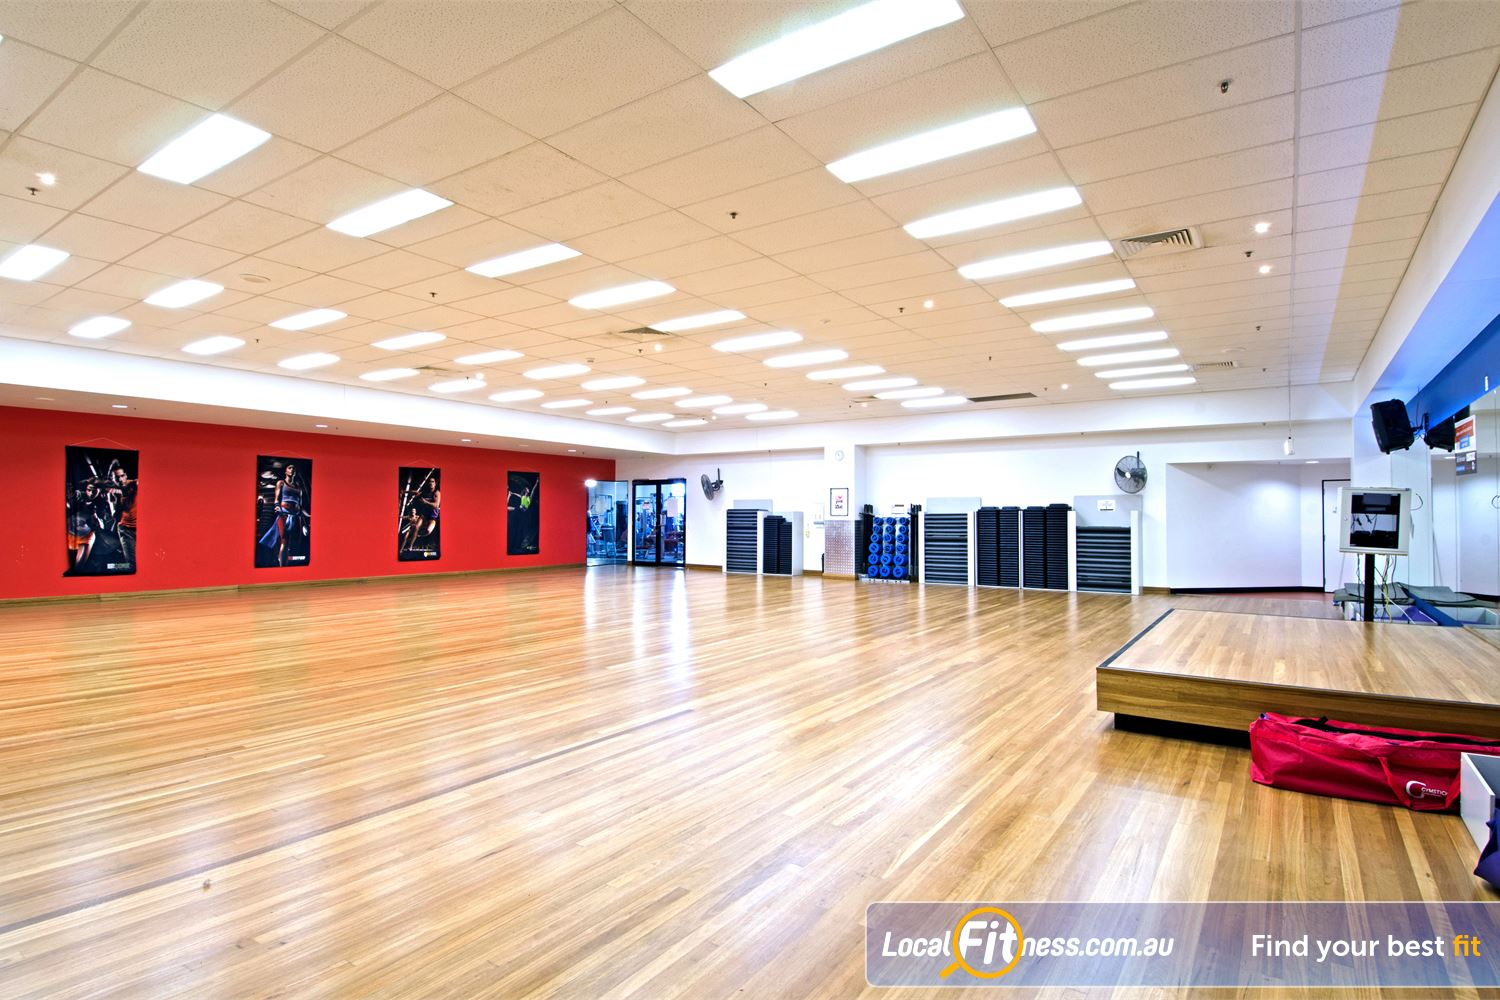 Goodlife Health Clubs Near Zillmere A great selection of classes including Chermside Yoga, Pilates and Zumba.